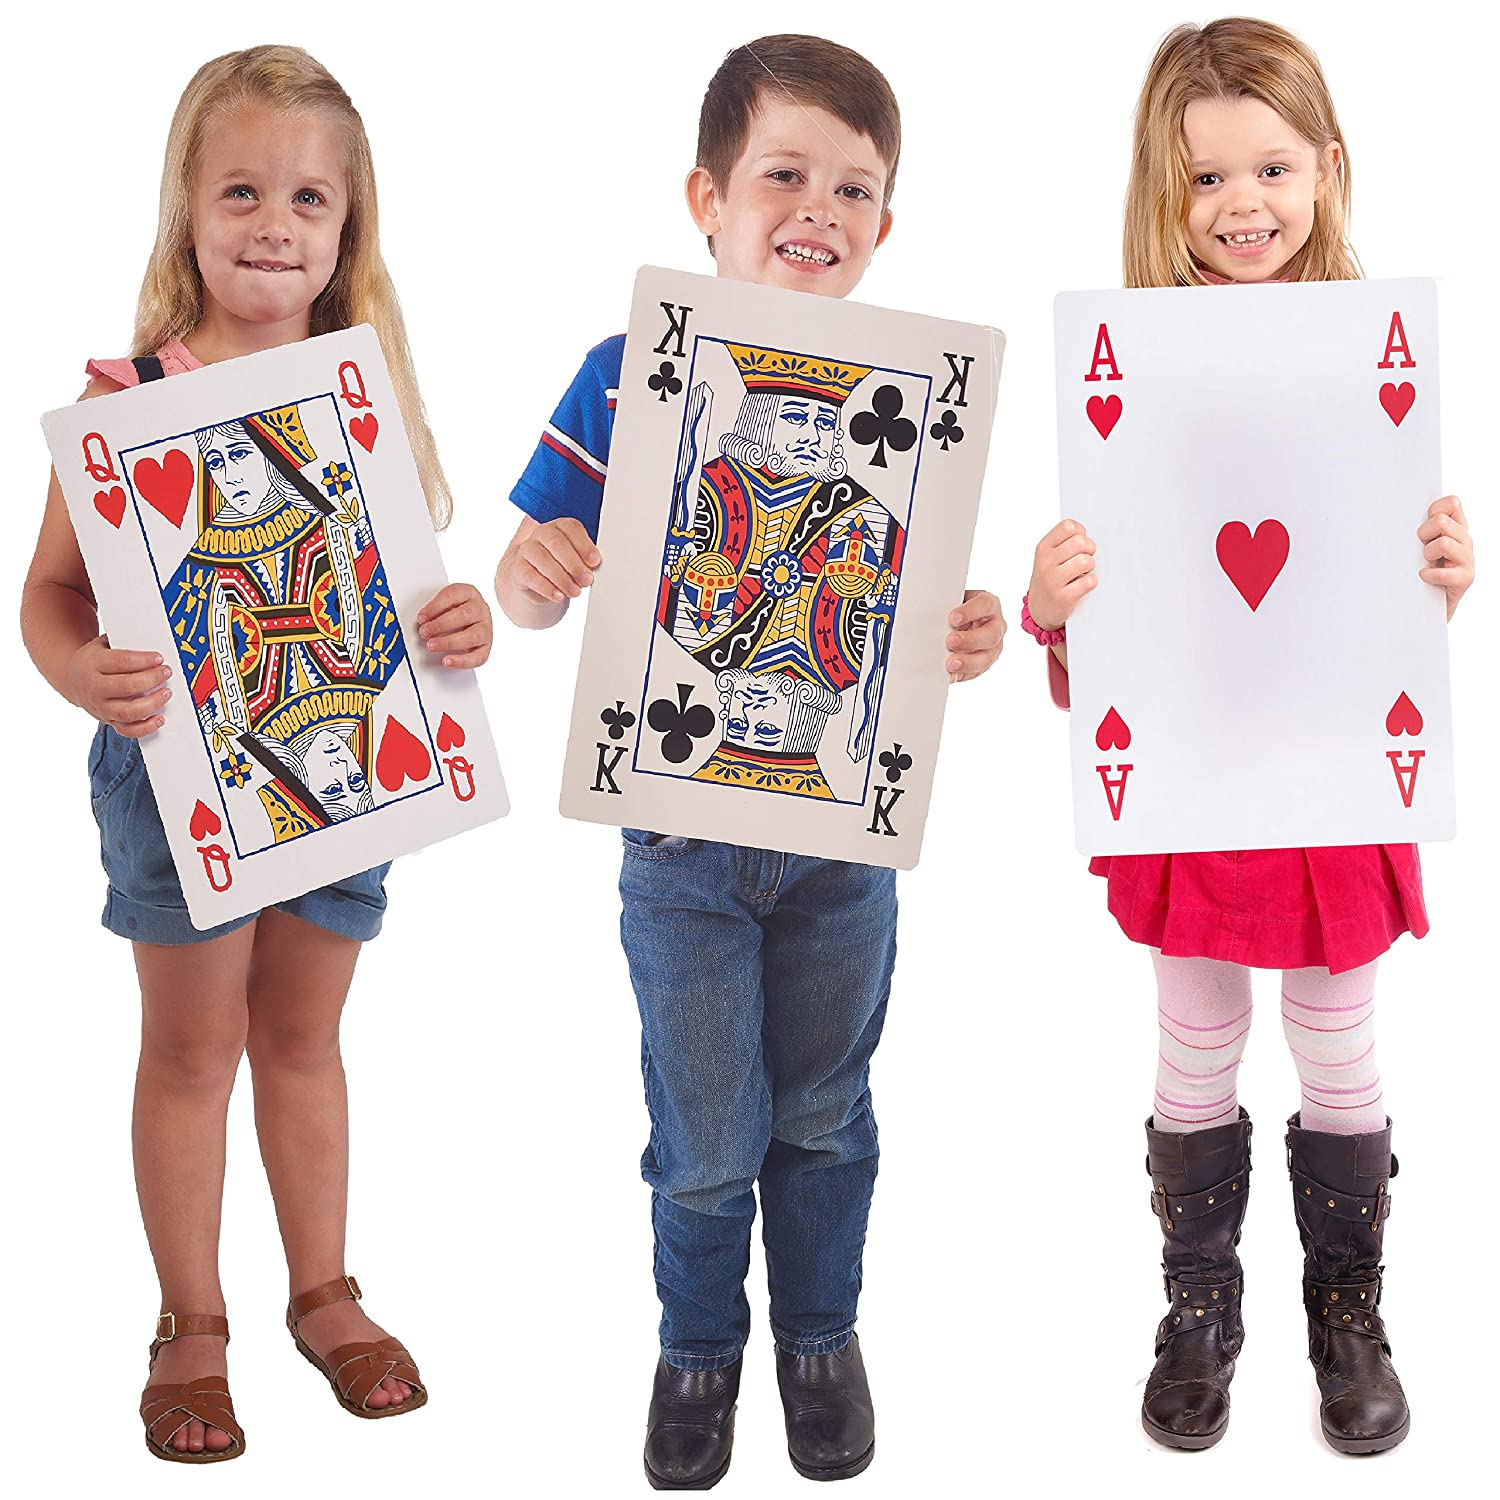 Jumbo Playing Cards Full Deck Huge Poker Index Playing Cards Fun for All  Ages! - Size 10 5 x 14 5 inches